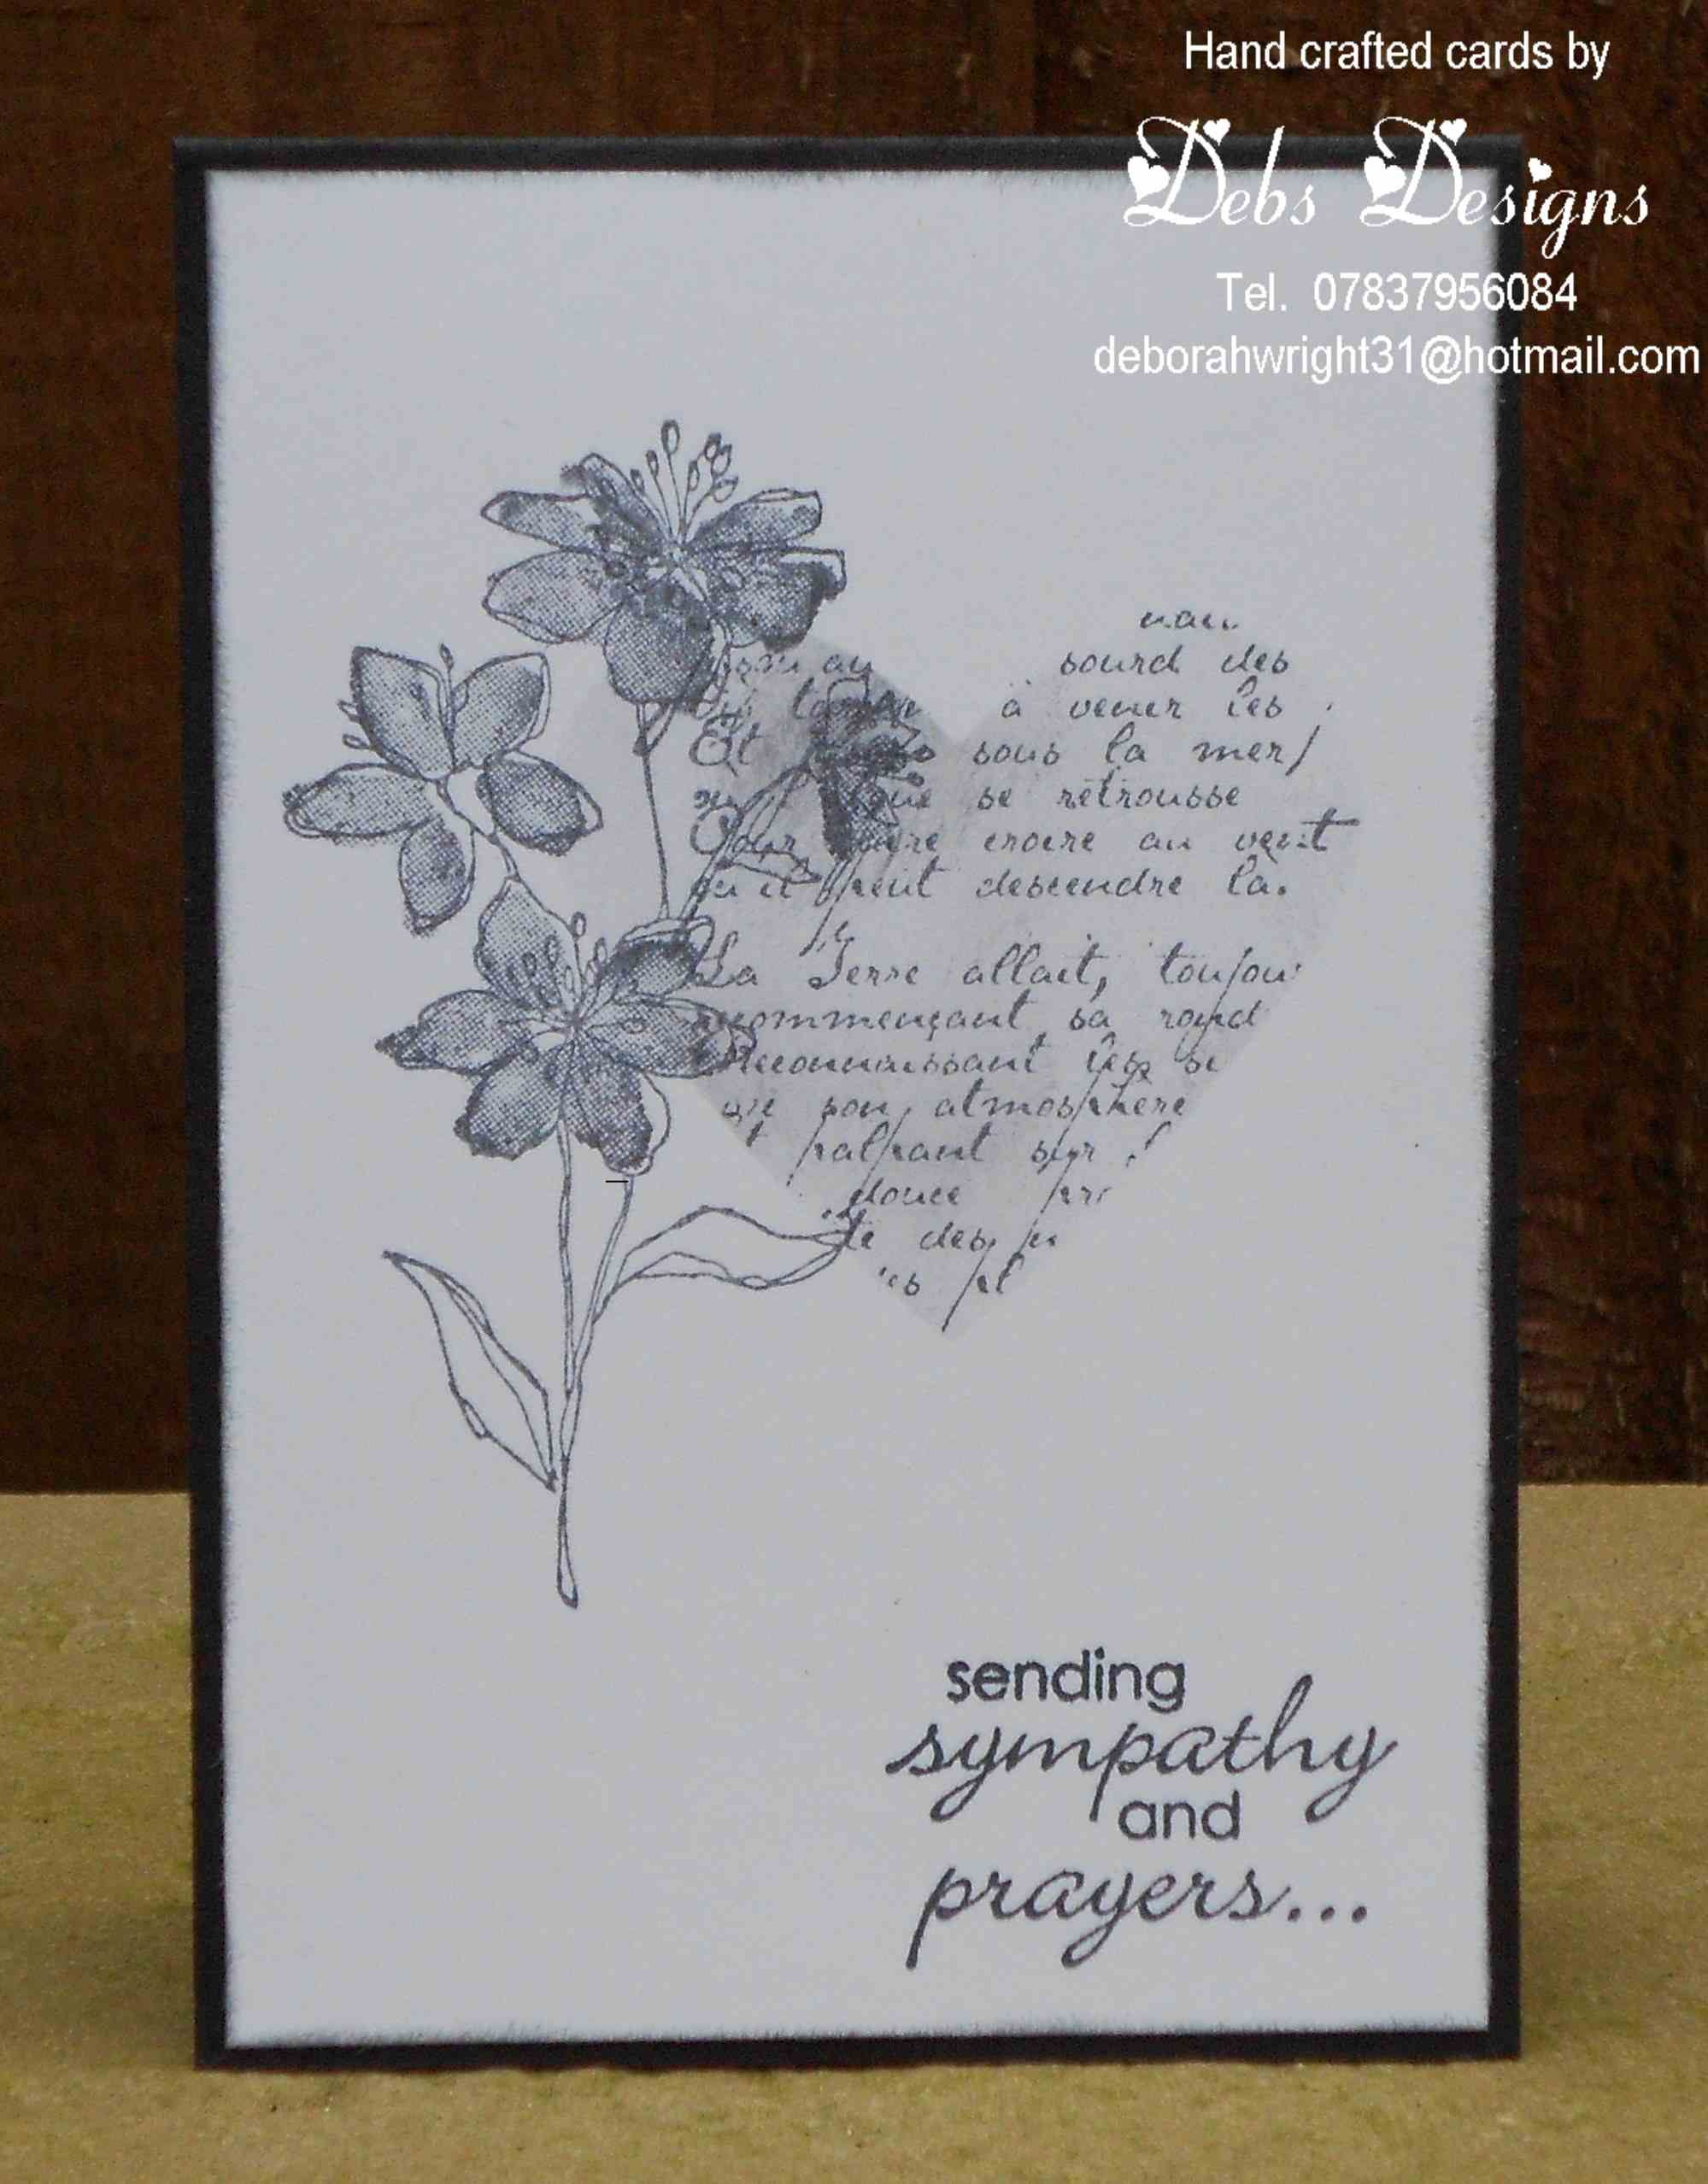 Sympathy cas cards pinterest cards card ideas and layouts